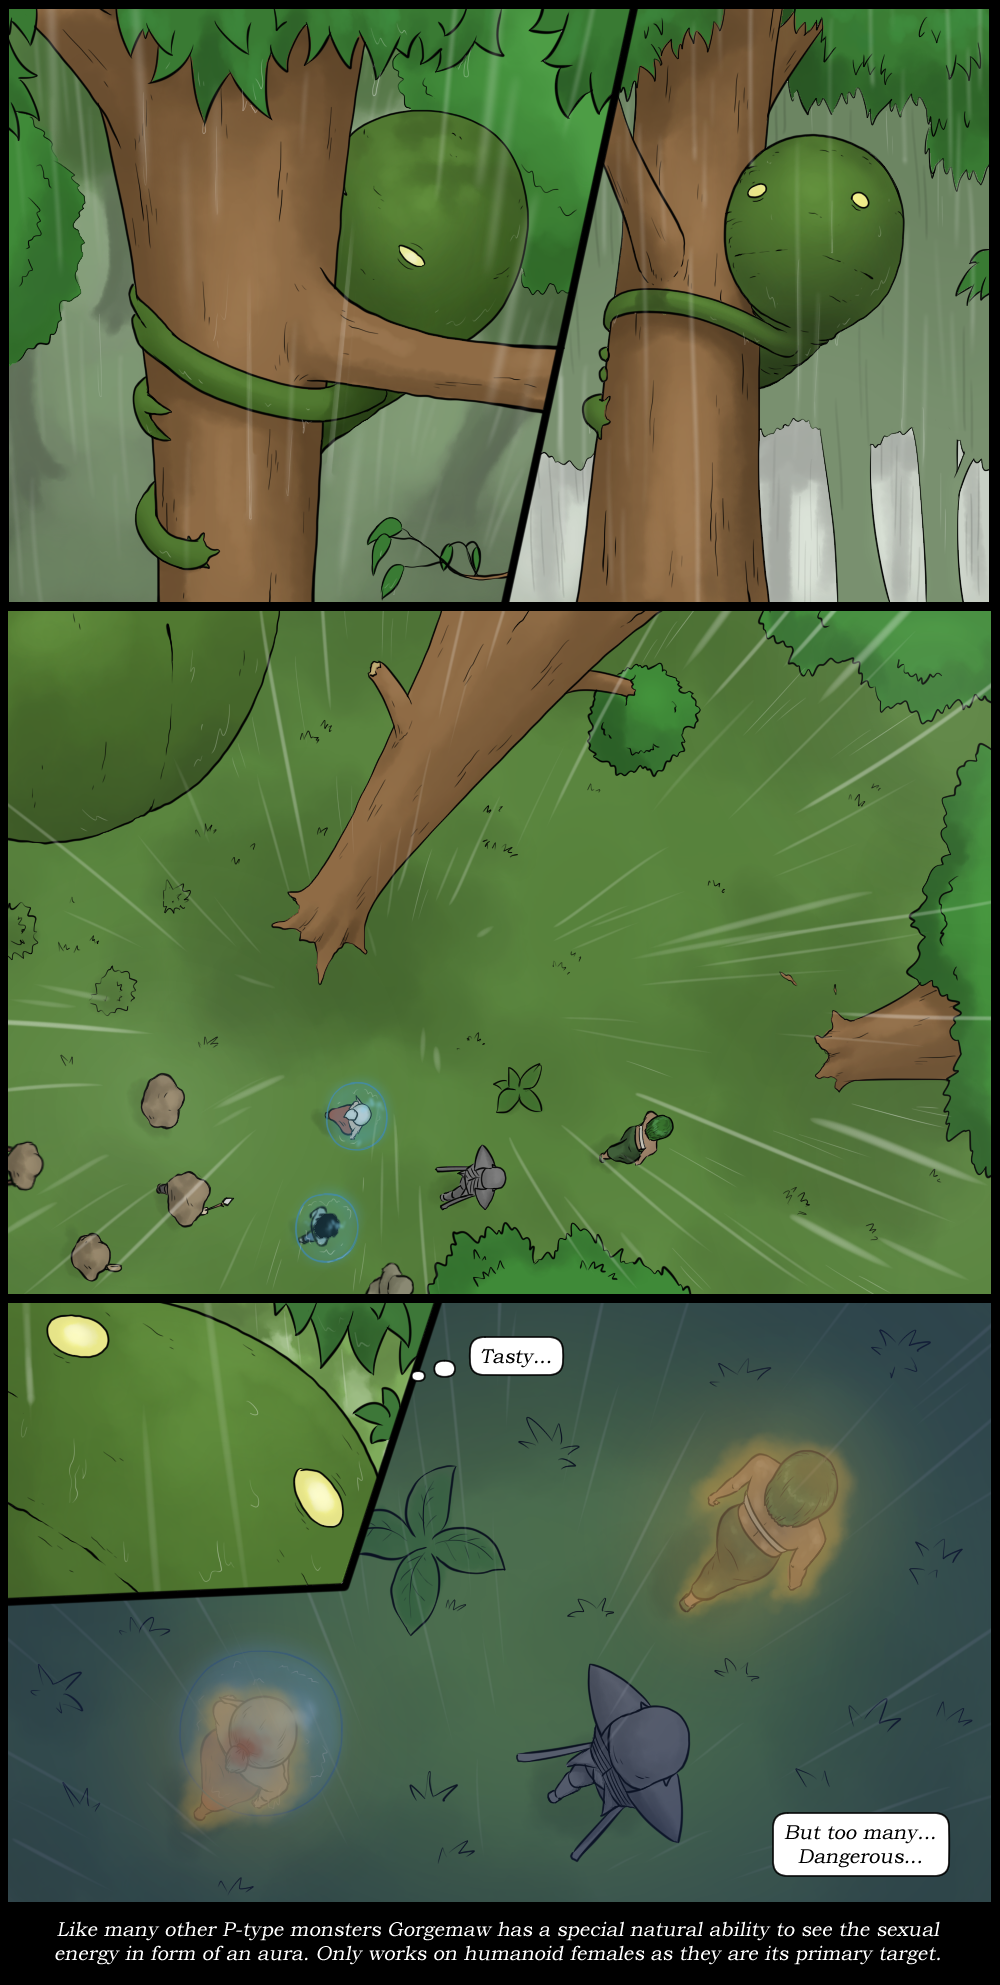 Page 15 - Calculating the chances (Part 1)